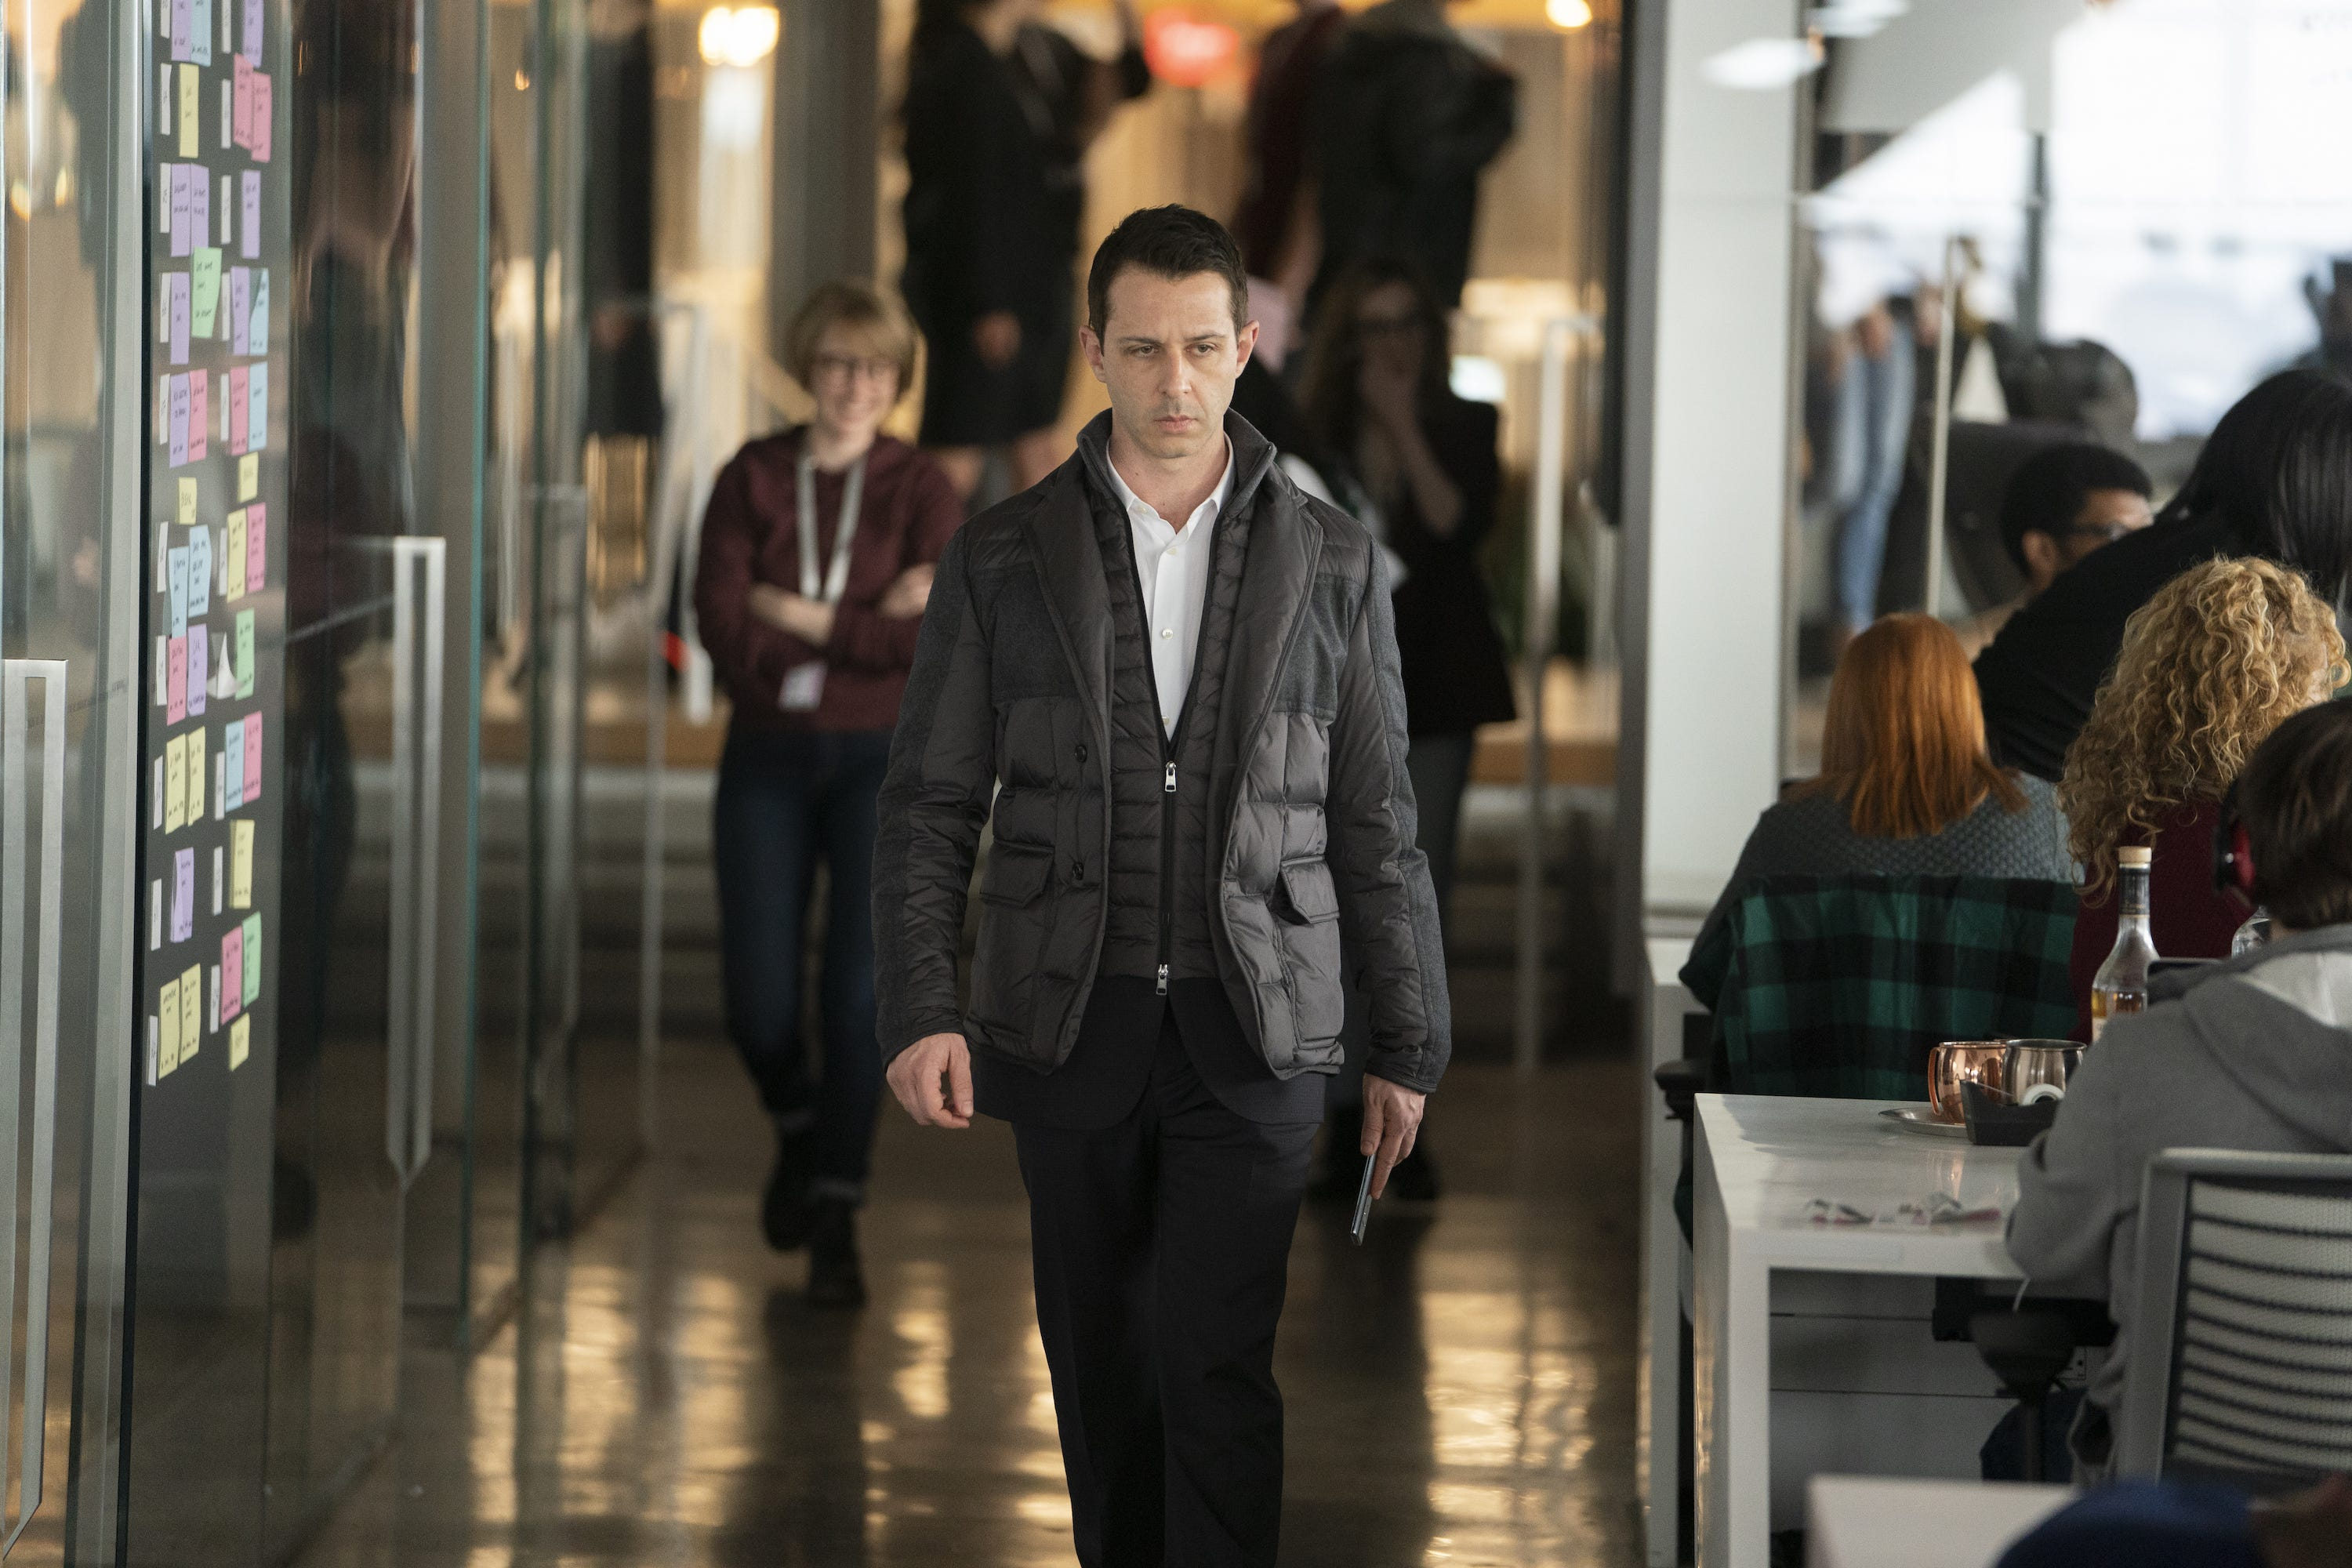 Daddy Issues Burn Bright In Episode 2 Of Succession